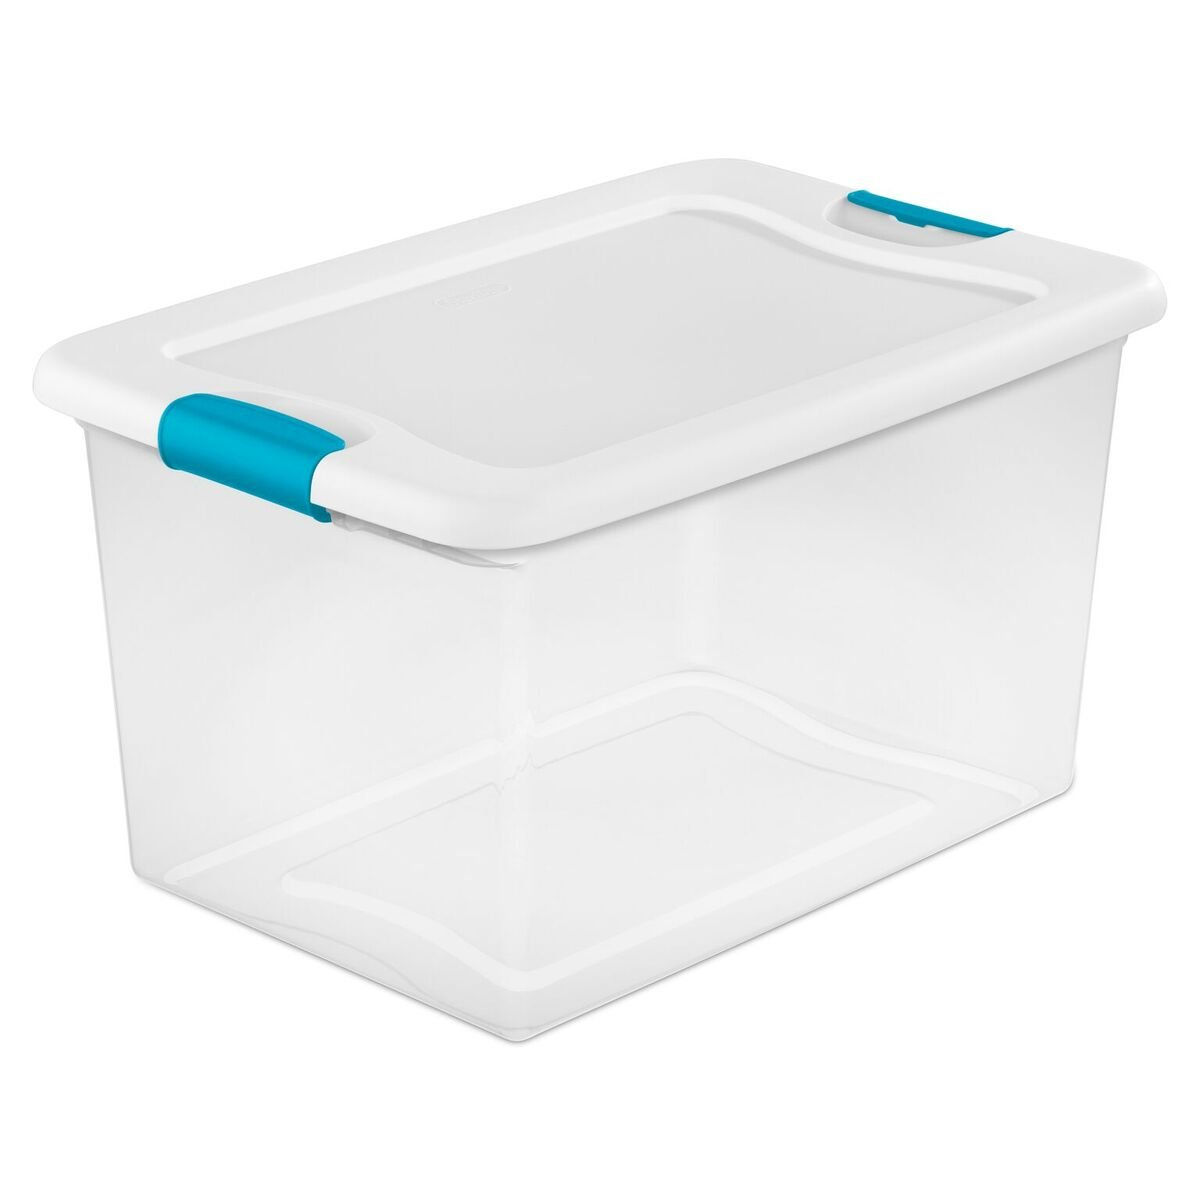 Sterilite 14978006  64 quart/61 L Latching Box with Clear Base, White Lid and Colored Latches, 6-Pack by STERILITE